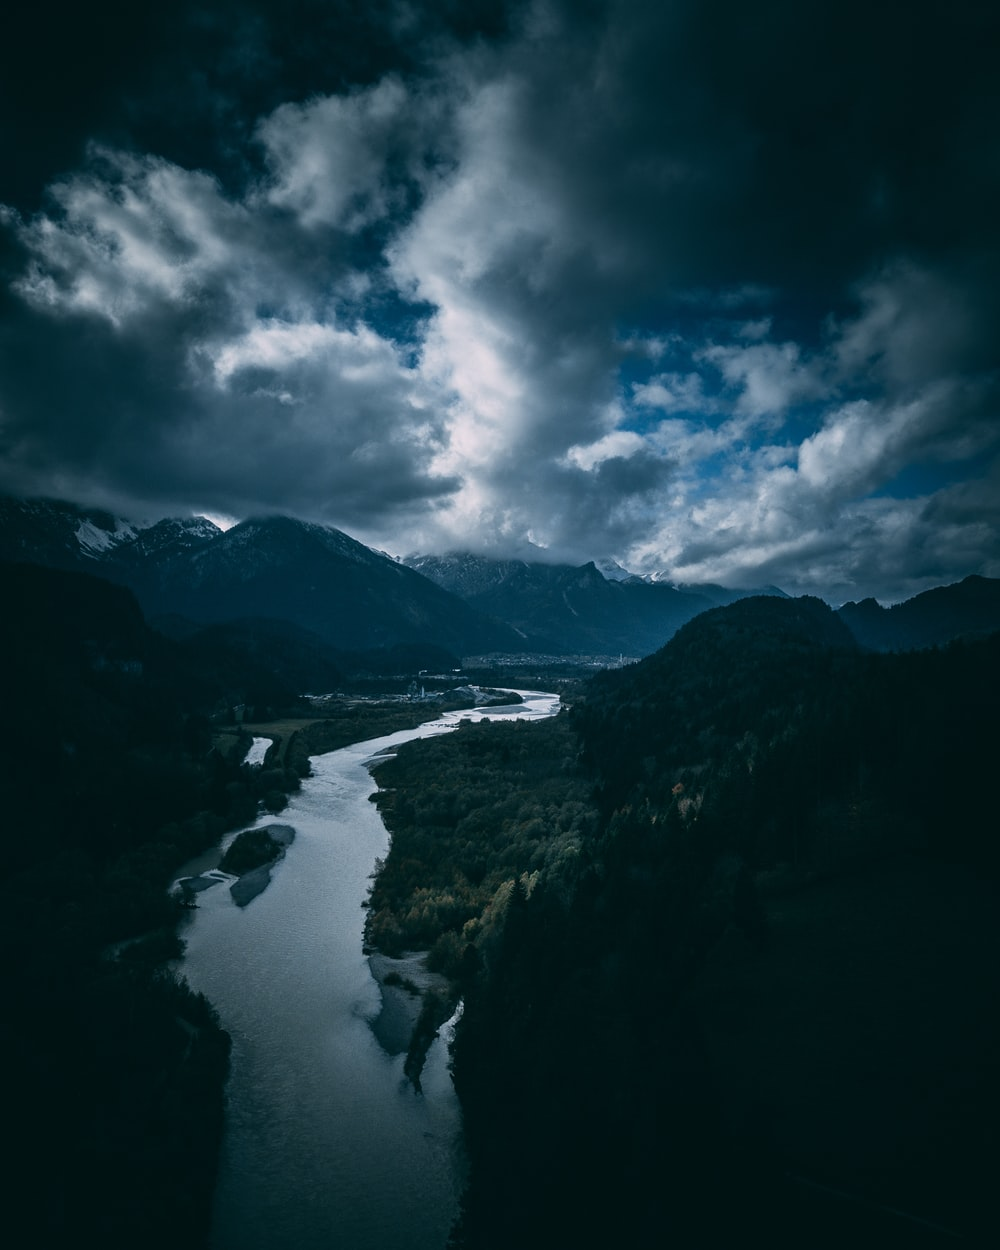 landscape photography of river and mountains